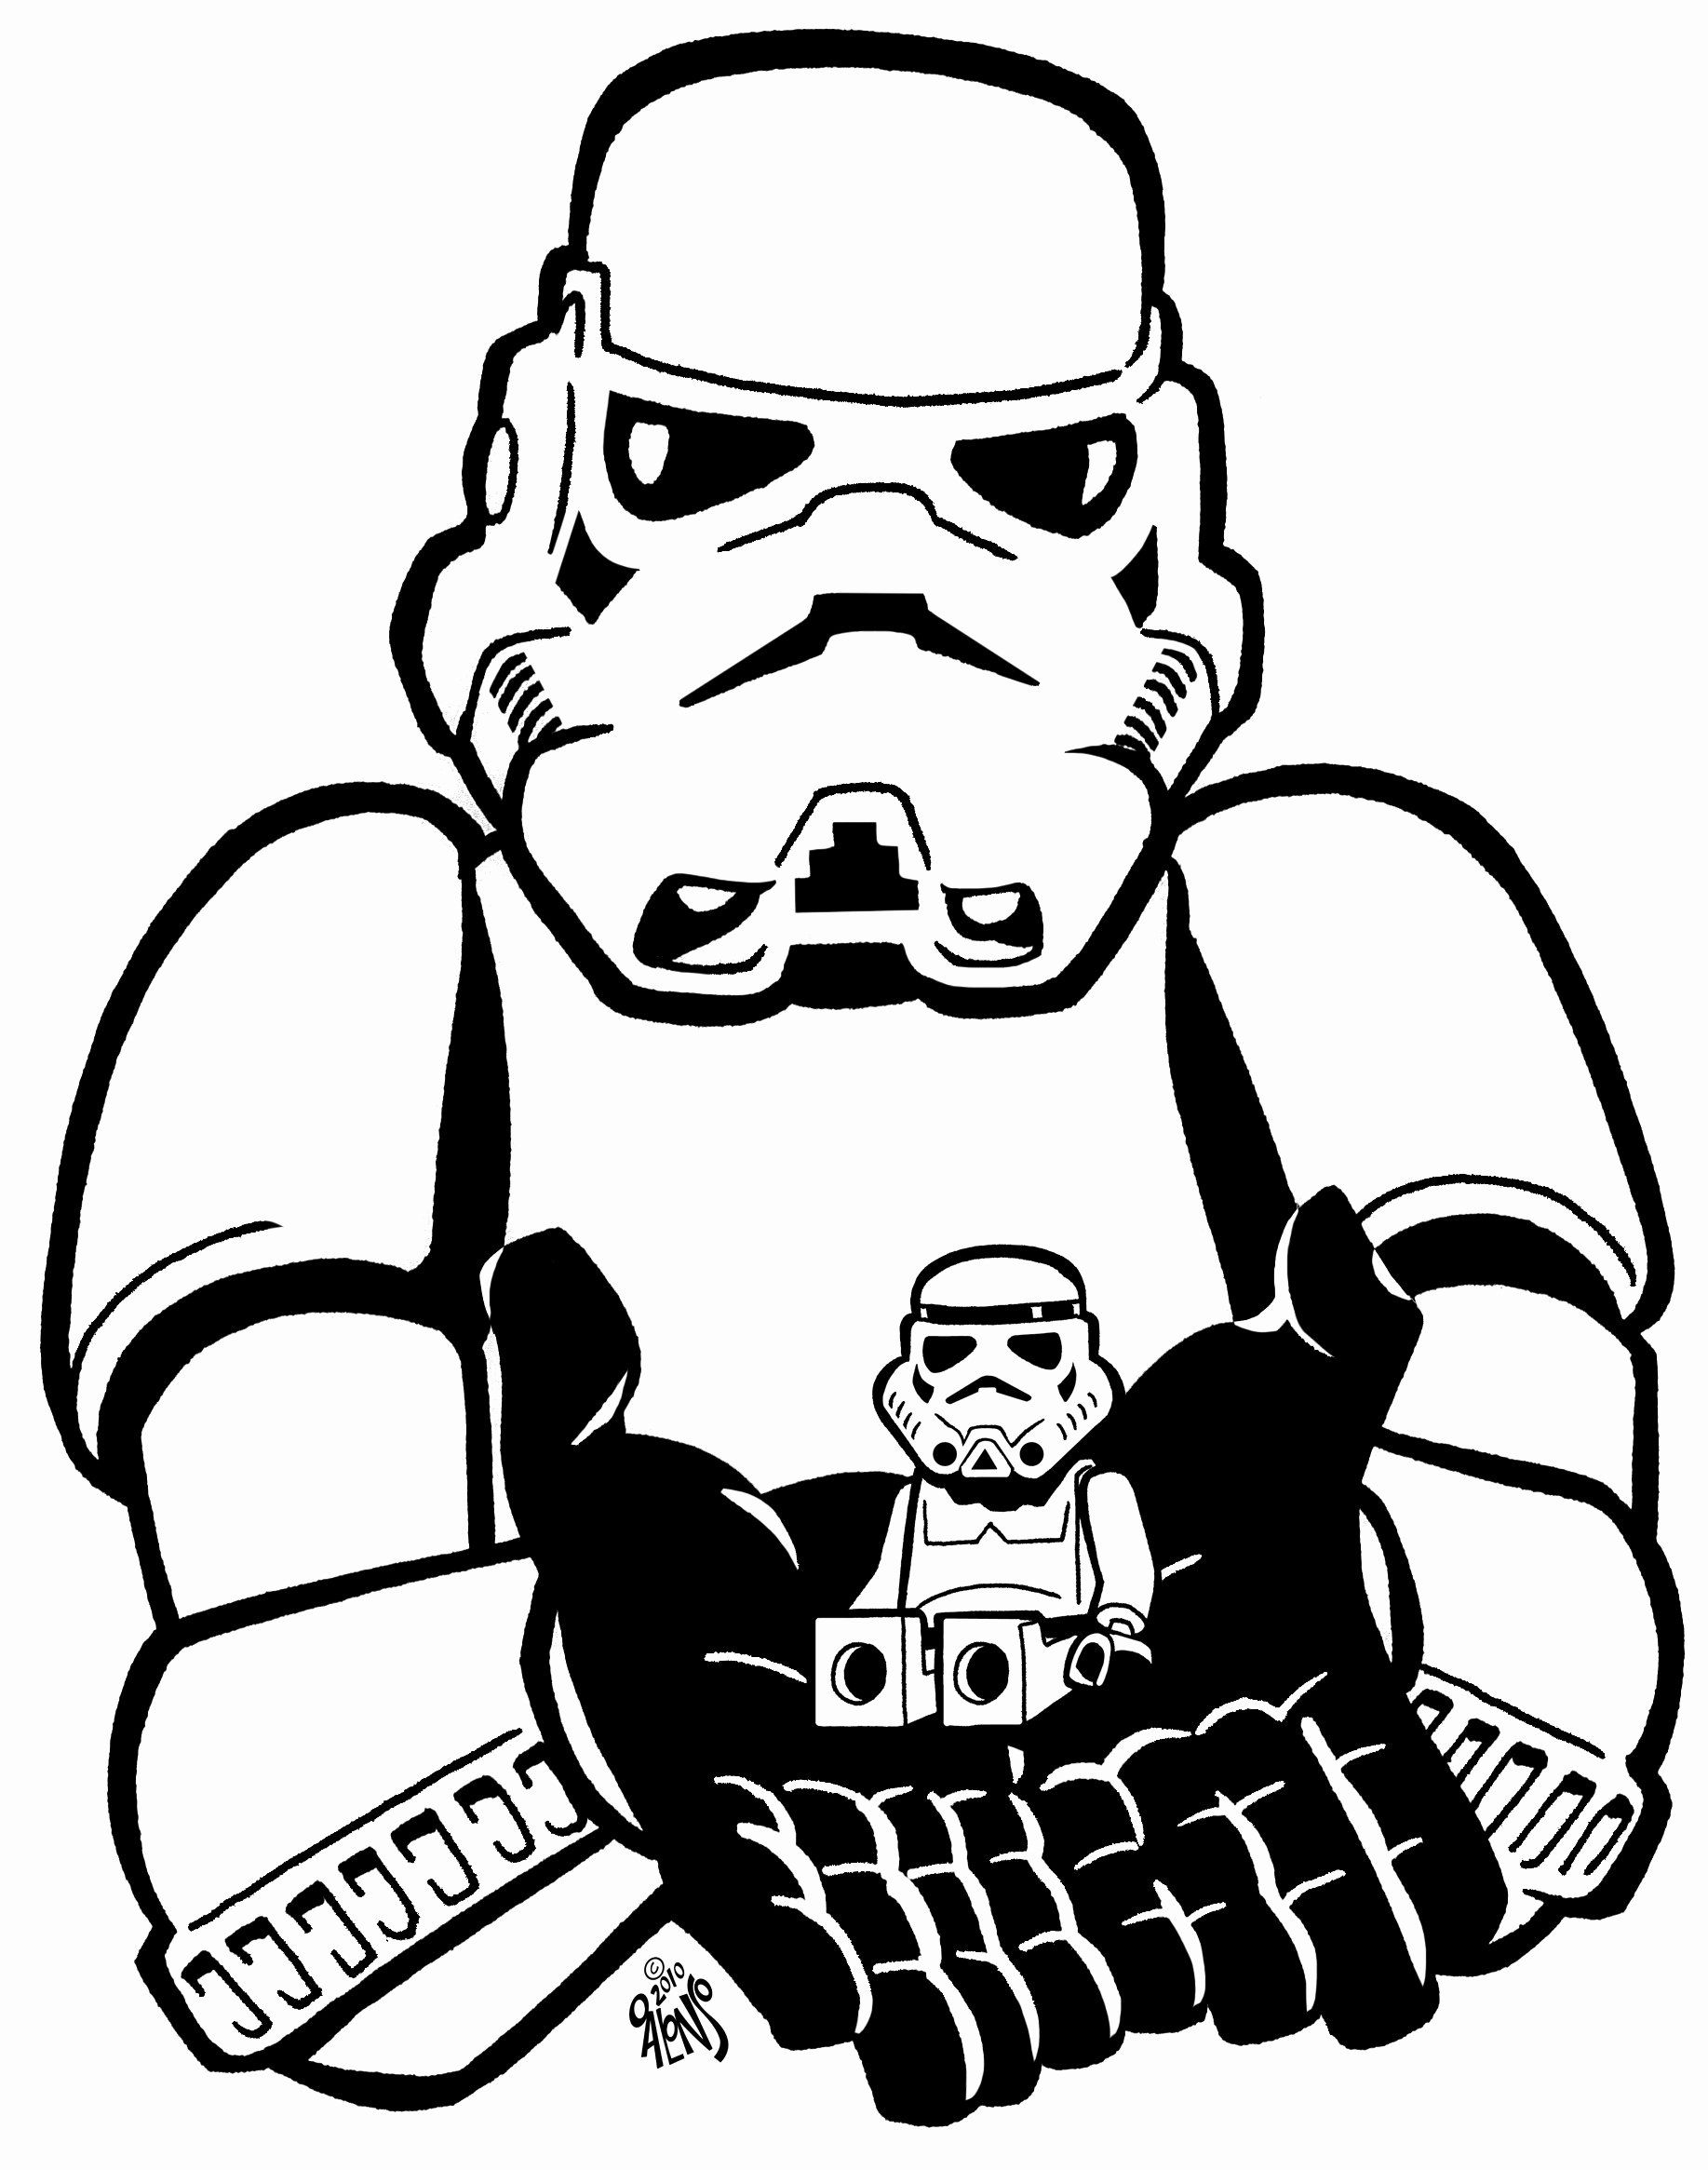 storm trooper coloring page inspirational stormtrooper helmet coloring page at getdrawings in 2020 coloring pages stormtrooper helmet stormtrooper pinterest